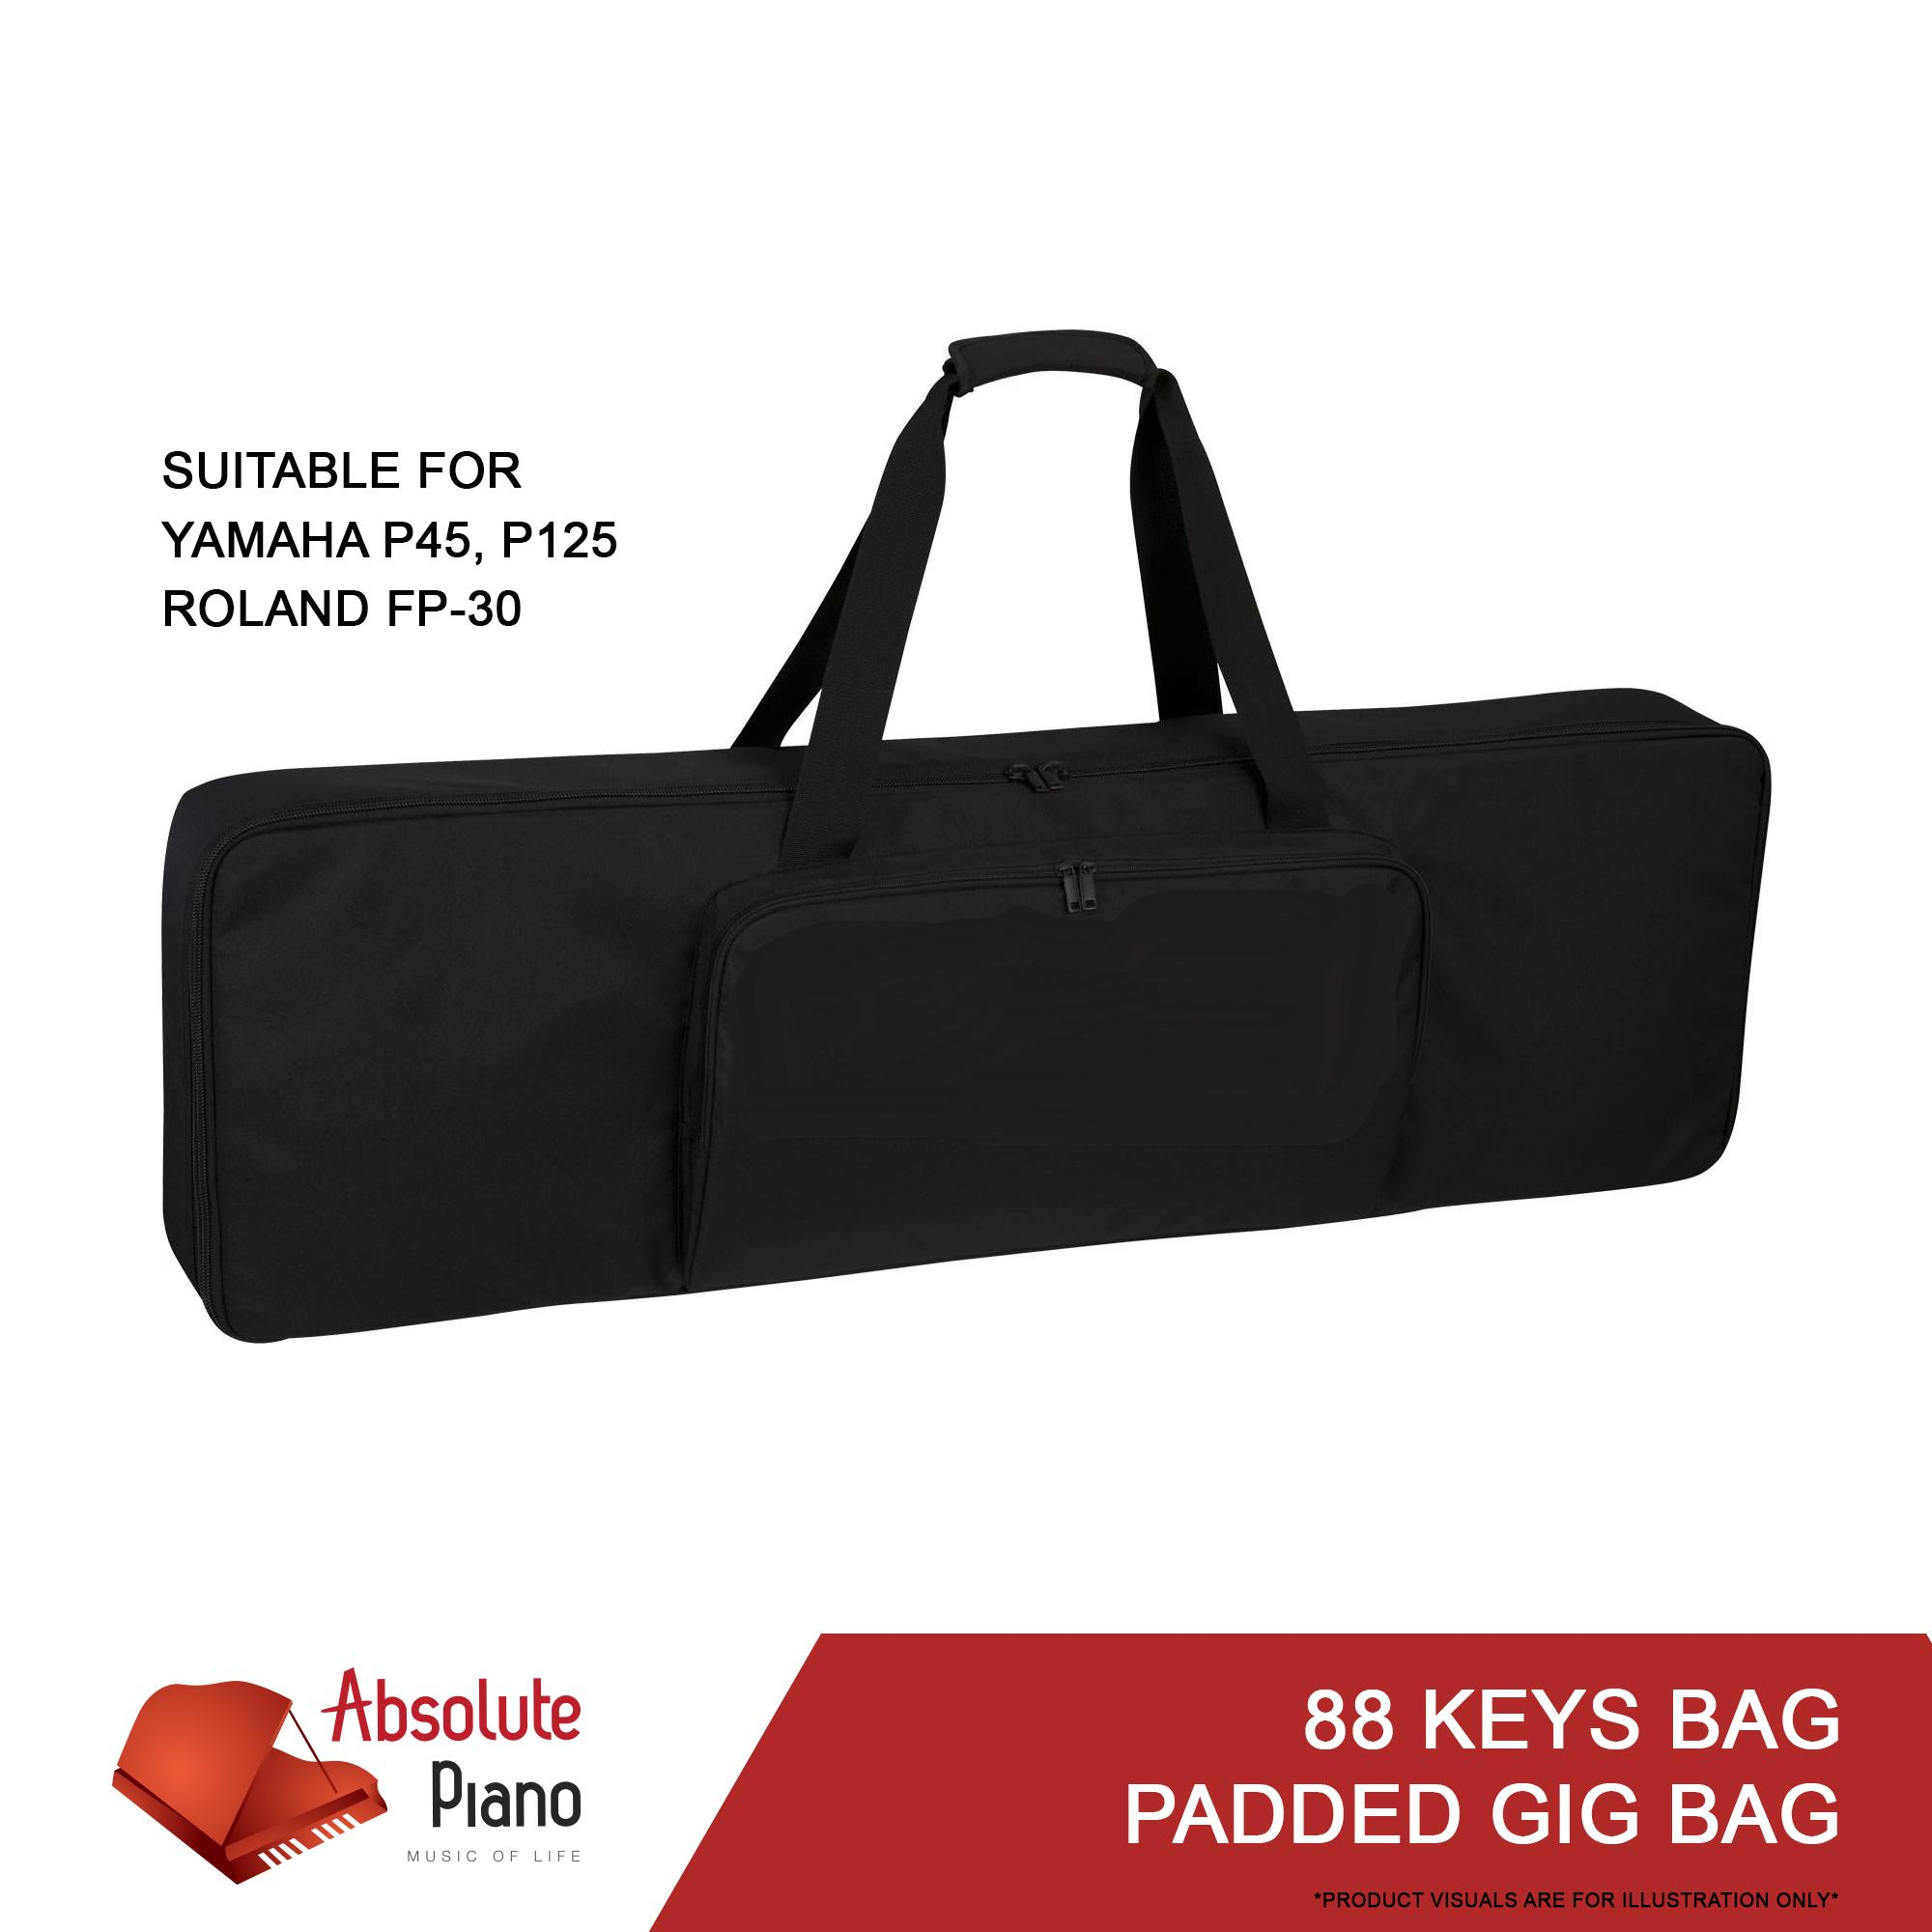 88 Keys Padded Gig Bag Portable Digital Piano Keyboard 88 Keys Padded Carrying Bag For Yamaha P 45 Yamaha P 125 Roland Fp 30 Absolute Accessories Ma1 The Music Works Store Electronic Instrument Lazada Singapore